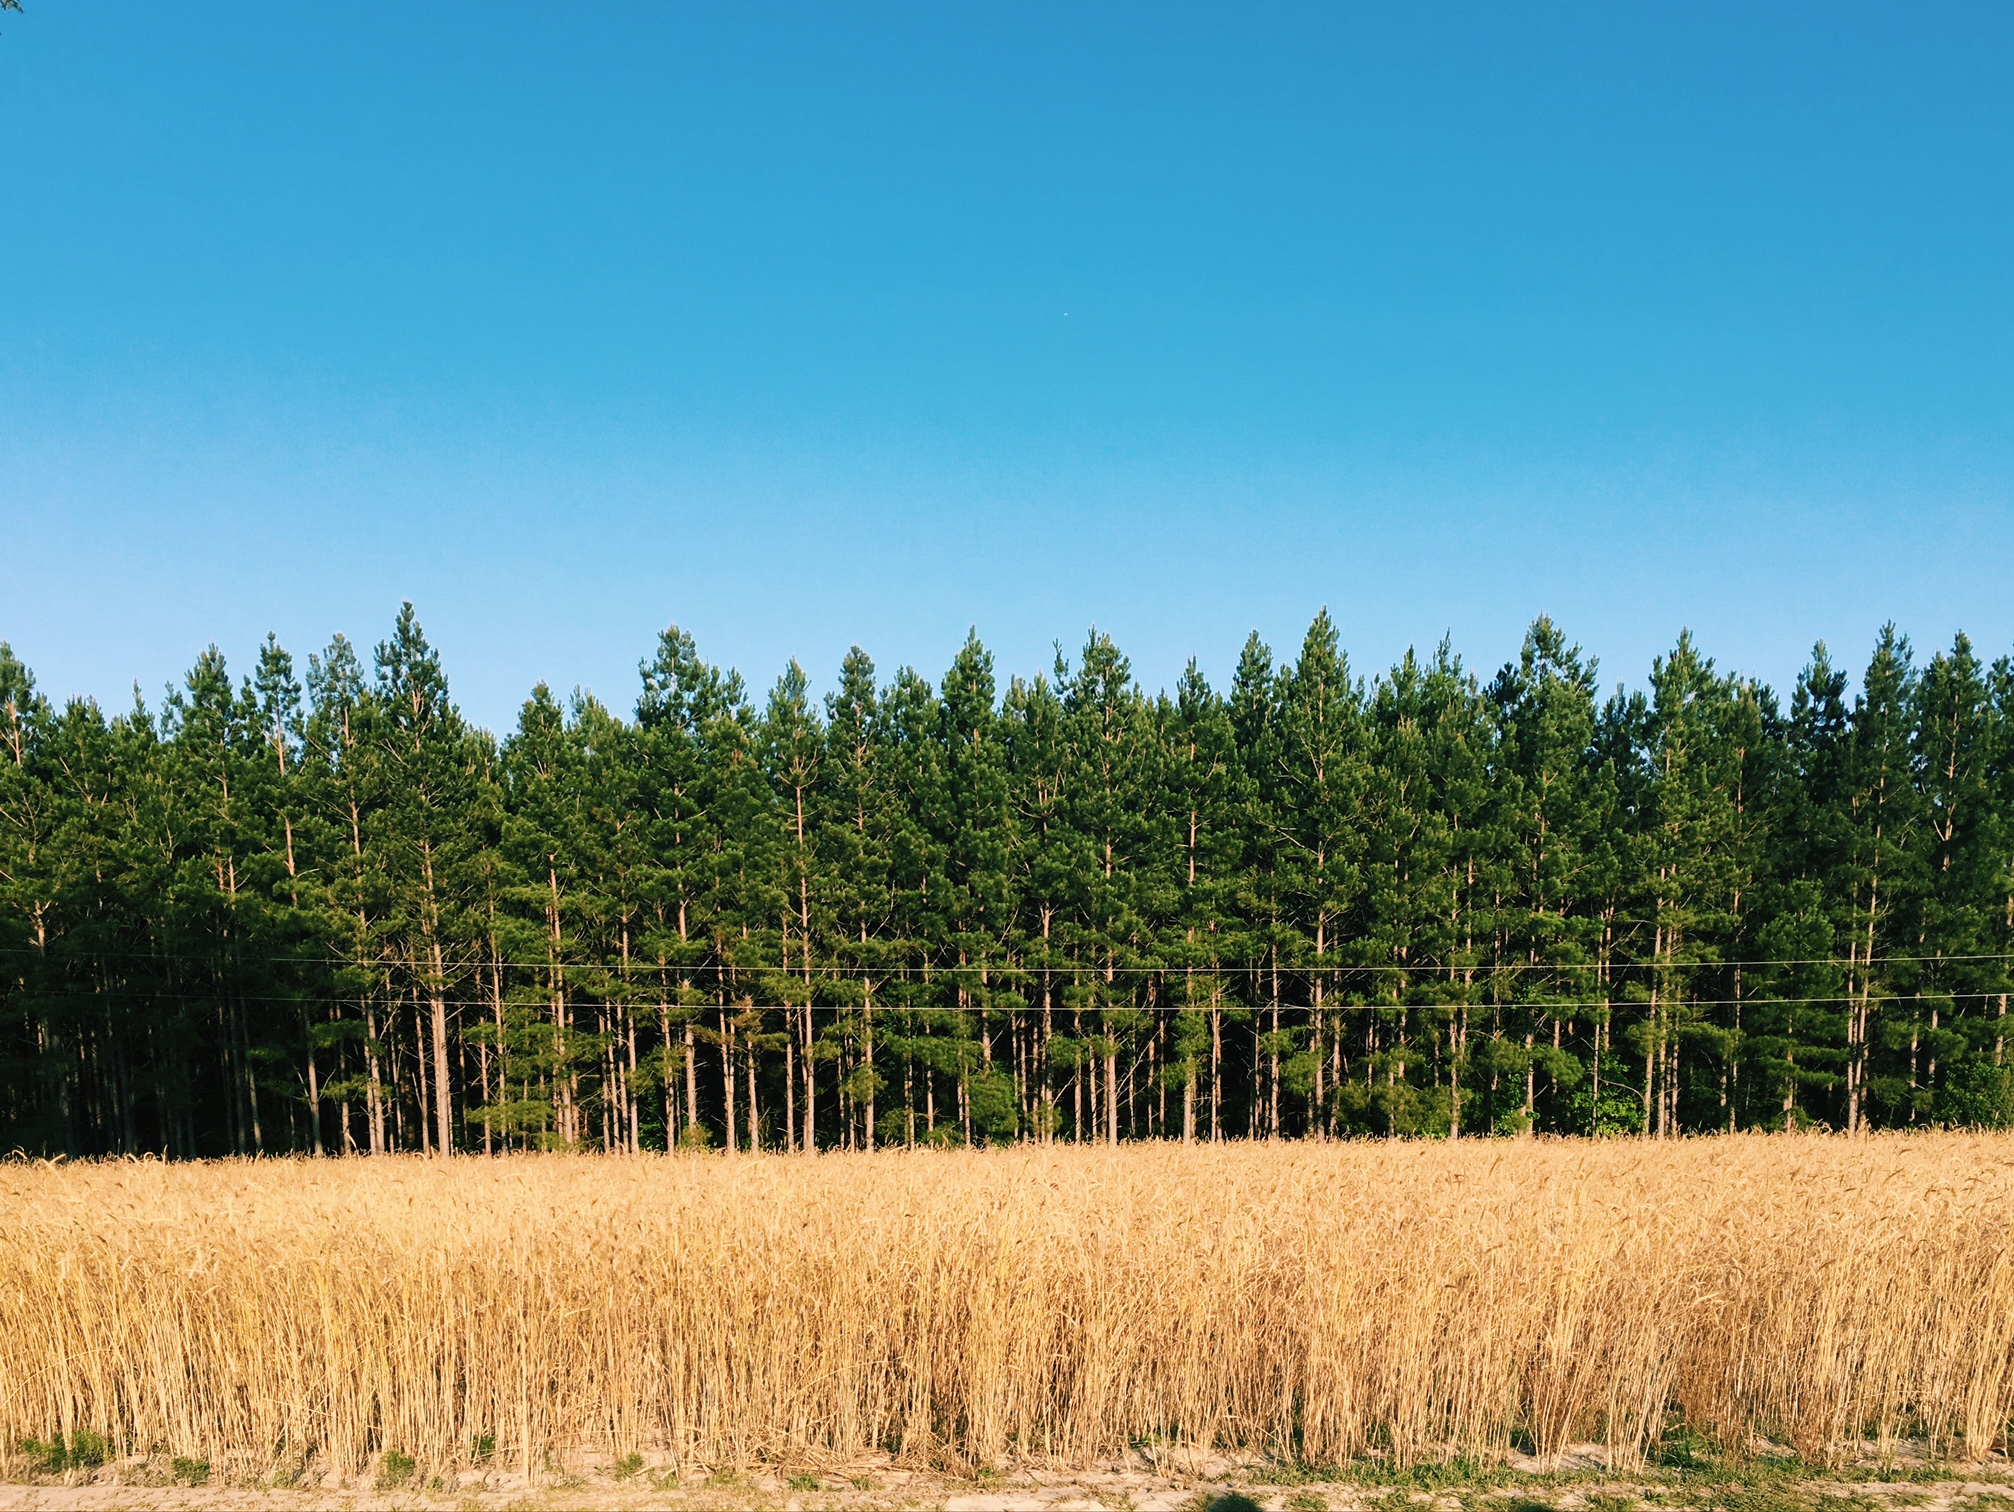 i love the stark contrasts in the country. the line of rye against the trees.